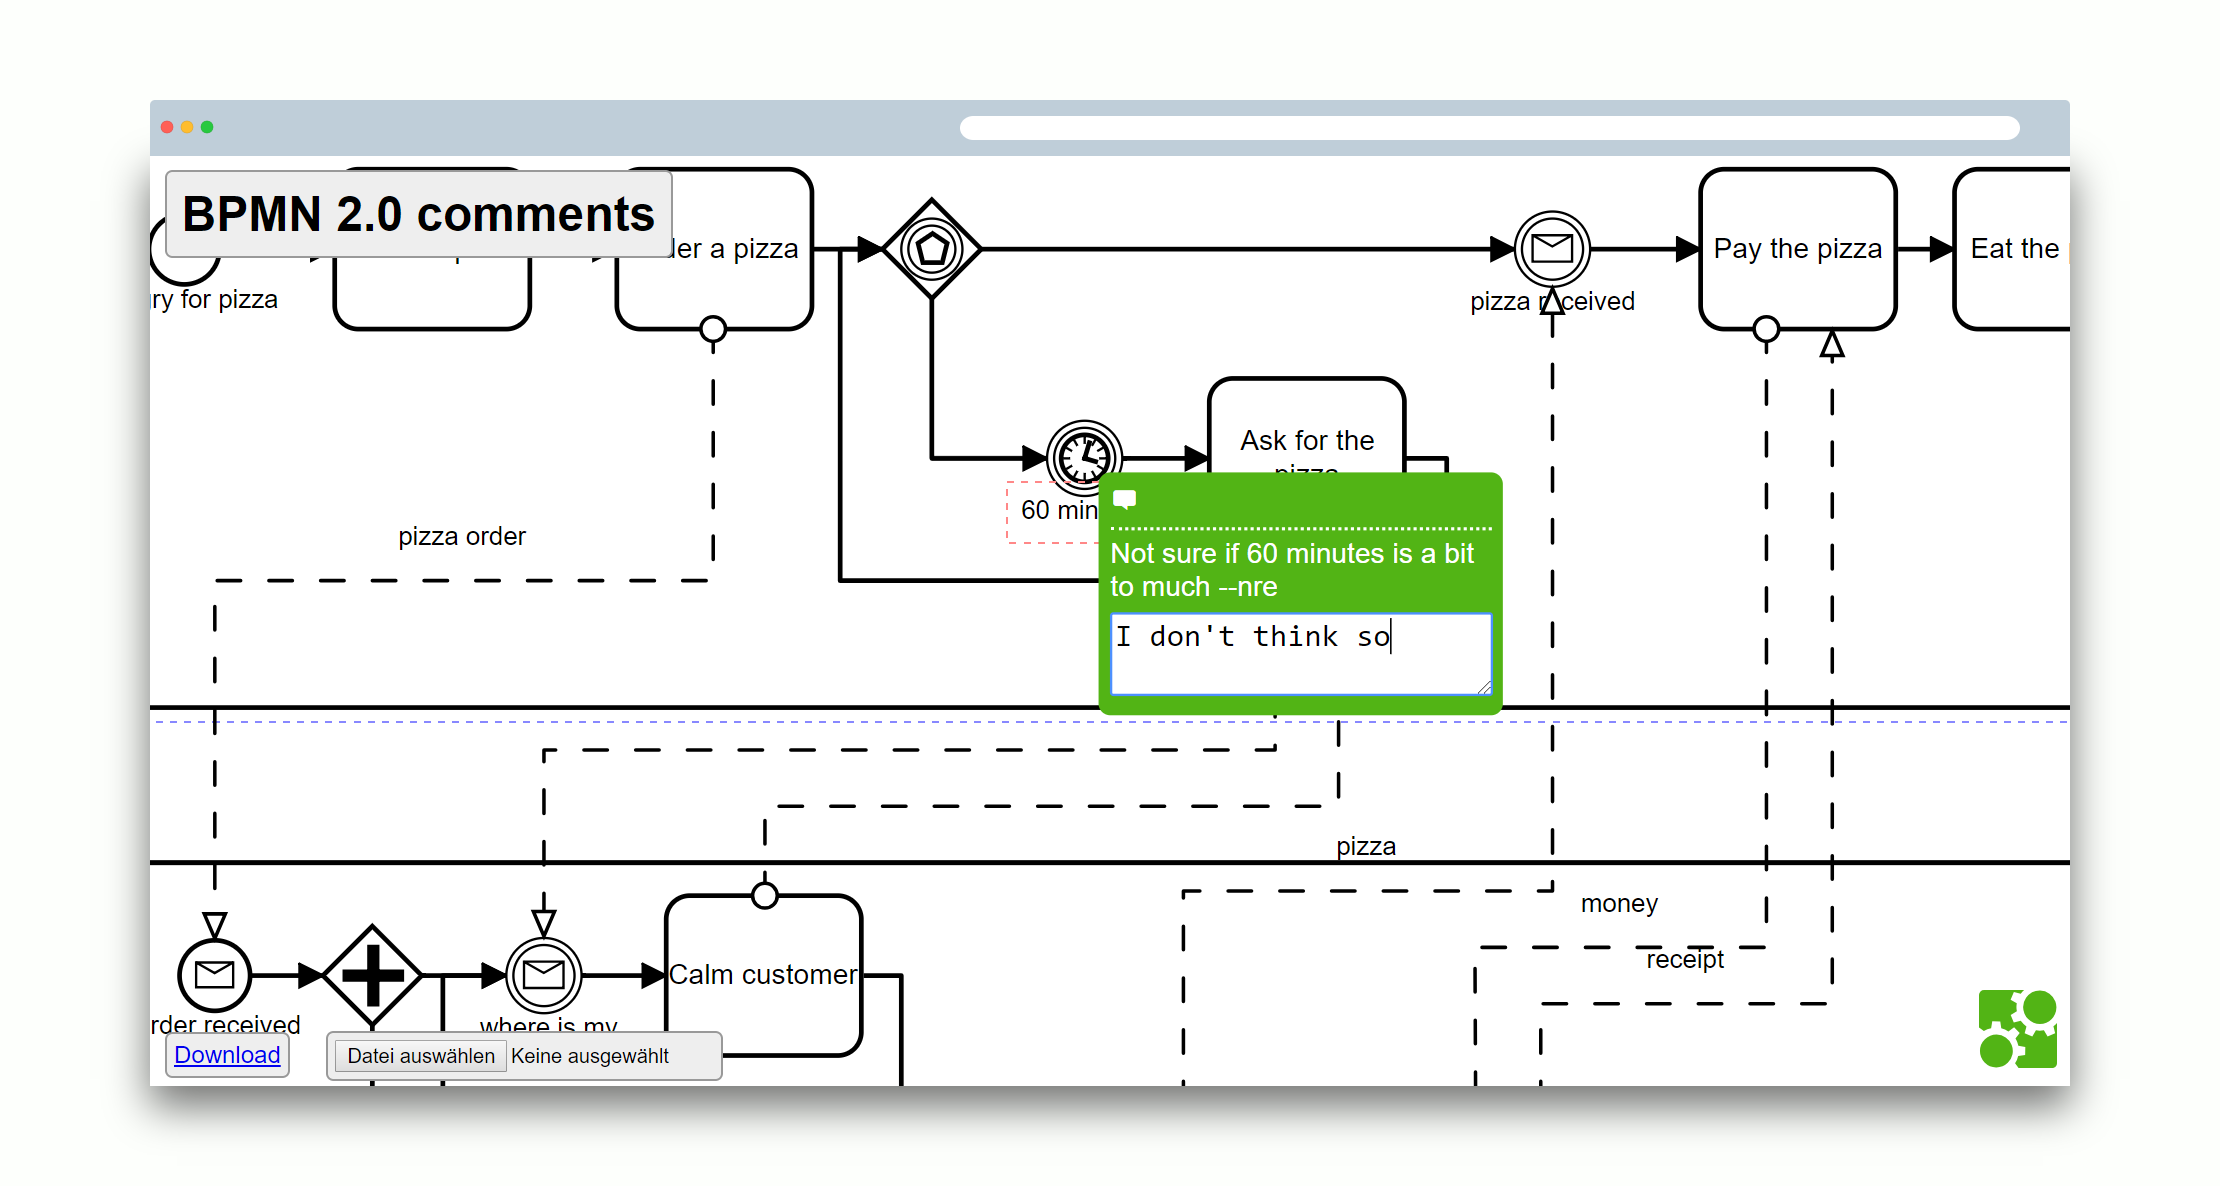 bpmn js examples commenting at master · bpmn io bpmn js examples    demo application screenshot